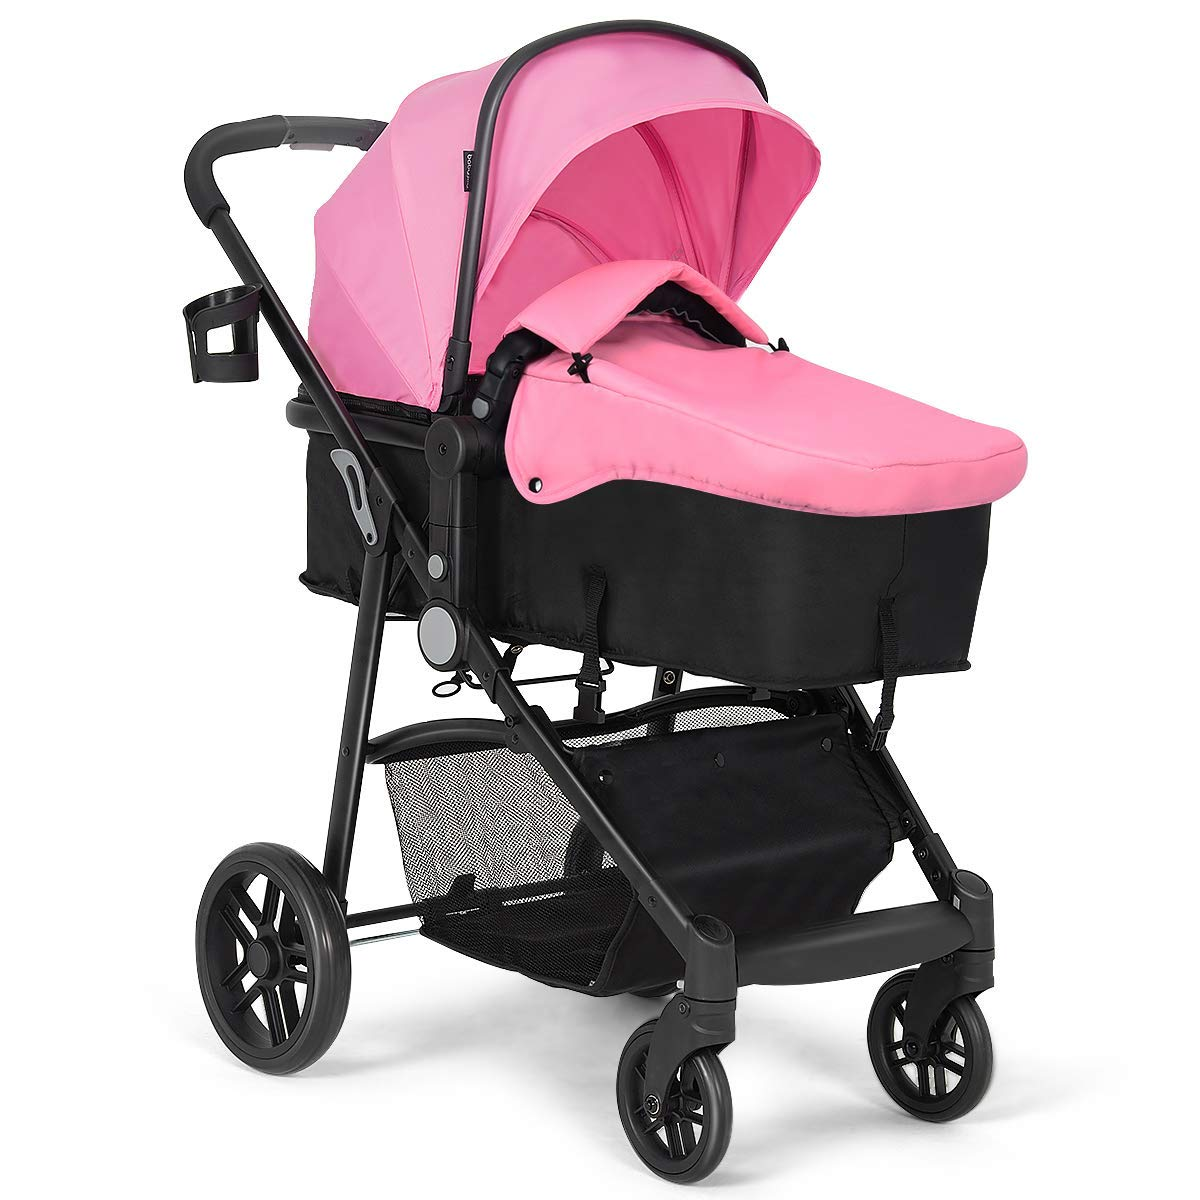 Costzon Baby Stroller, 2 in 1 Convertible Carriage Bassinet to Stroller, Pushchair with Foot Cover, Cup Holder, Large Storage Space, Wheels Suspension, 5-Point Harness (Pink Color)